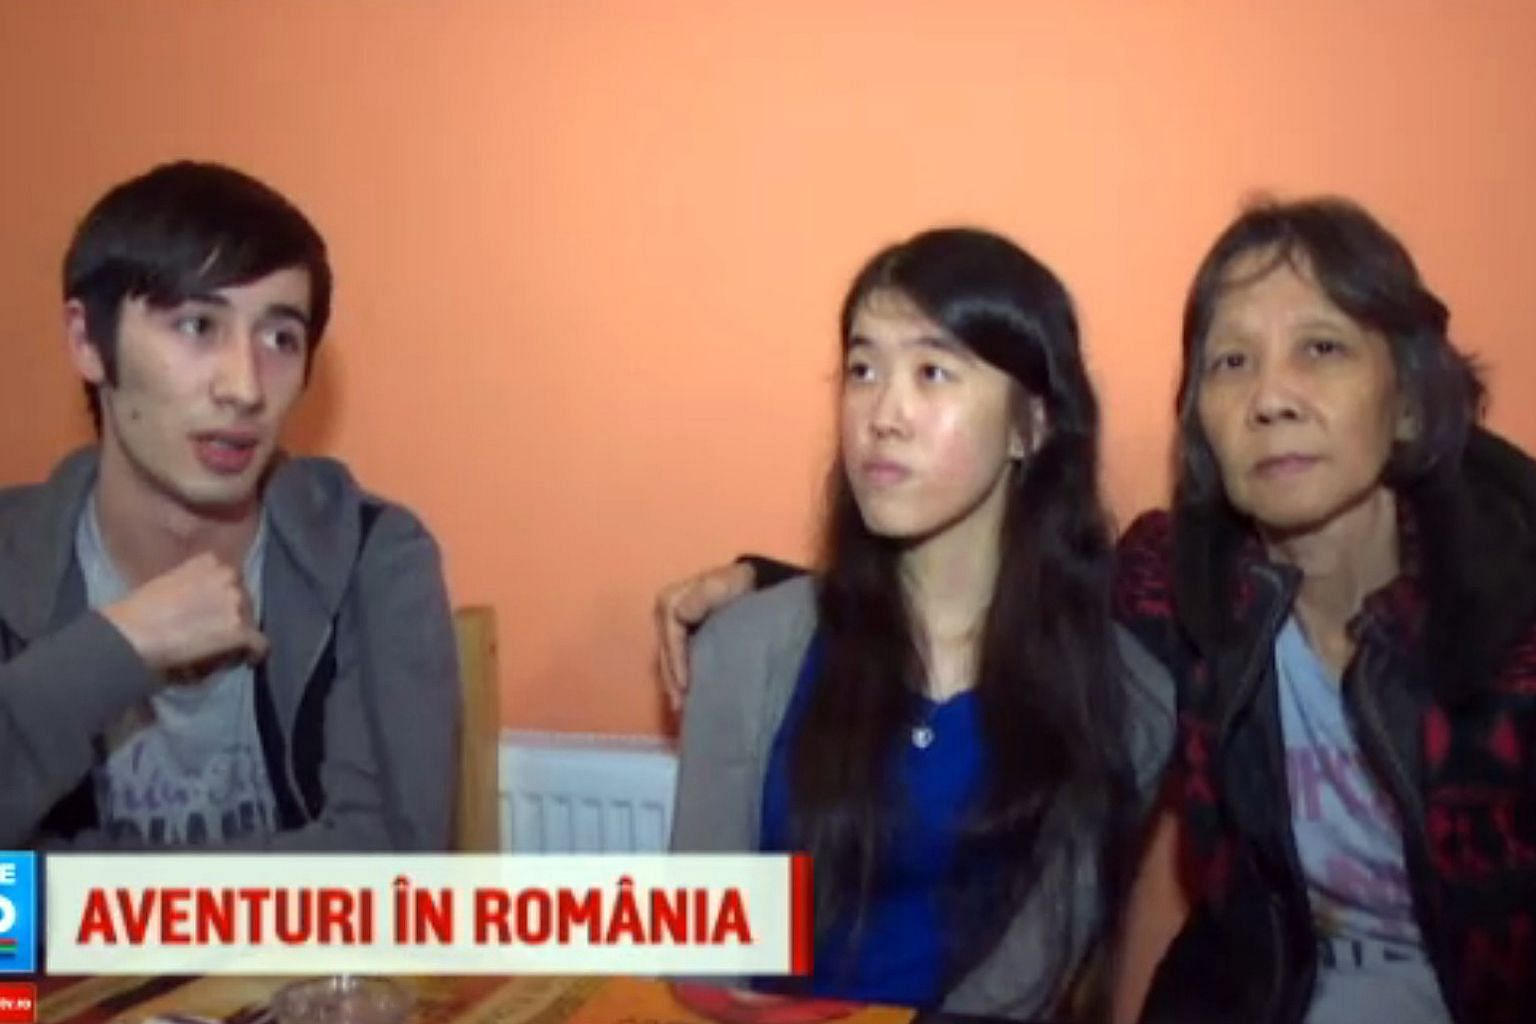 Above: Ms Cheryl Yap Lay Leng with her mother, Madam Foo Li Kheng, and her Romanian boyfriend Alexandru Donea in an interview with Romanian broadcaster Pro TV. Below: A photo of Ms Yap and her mother, flanked by police officers, was posted by the Rom